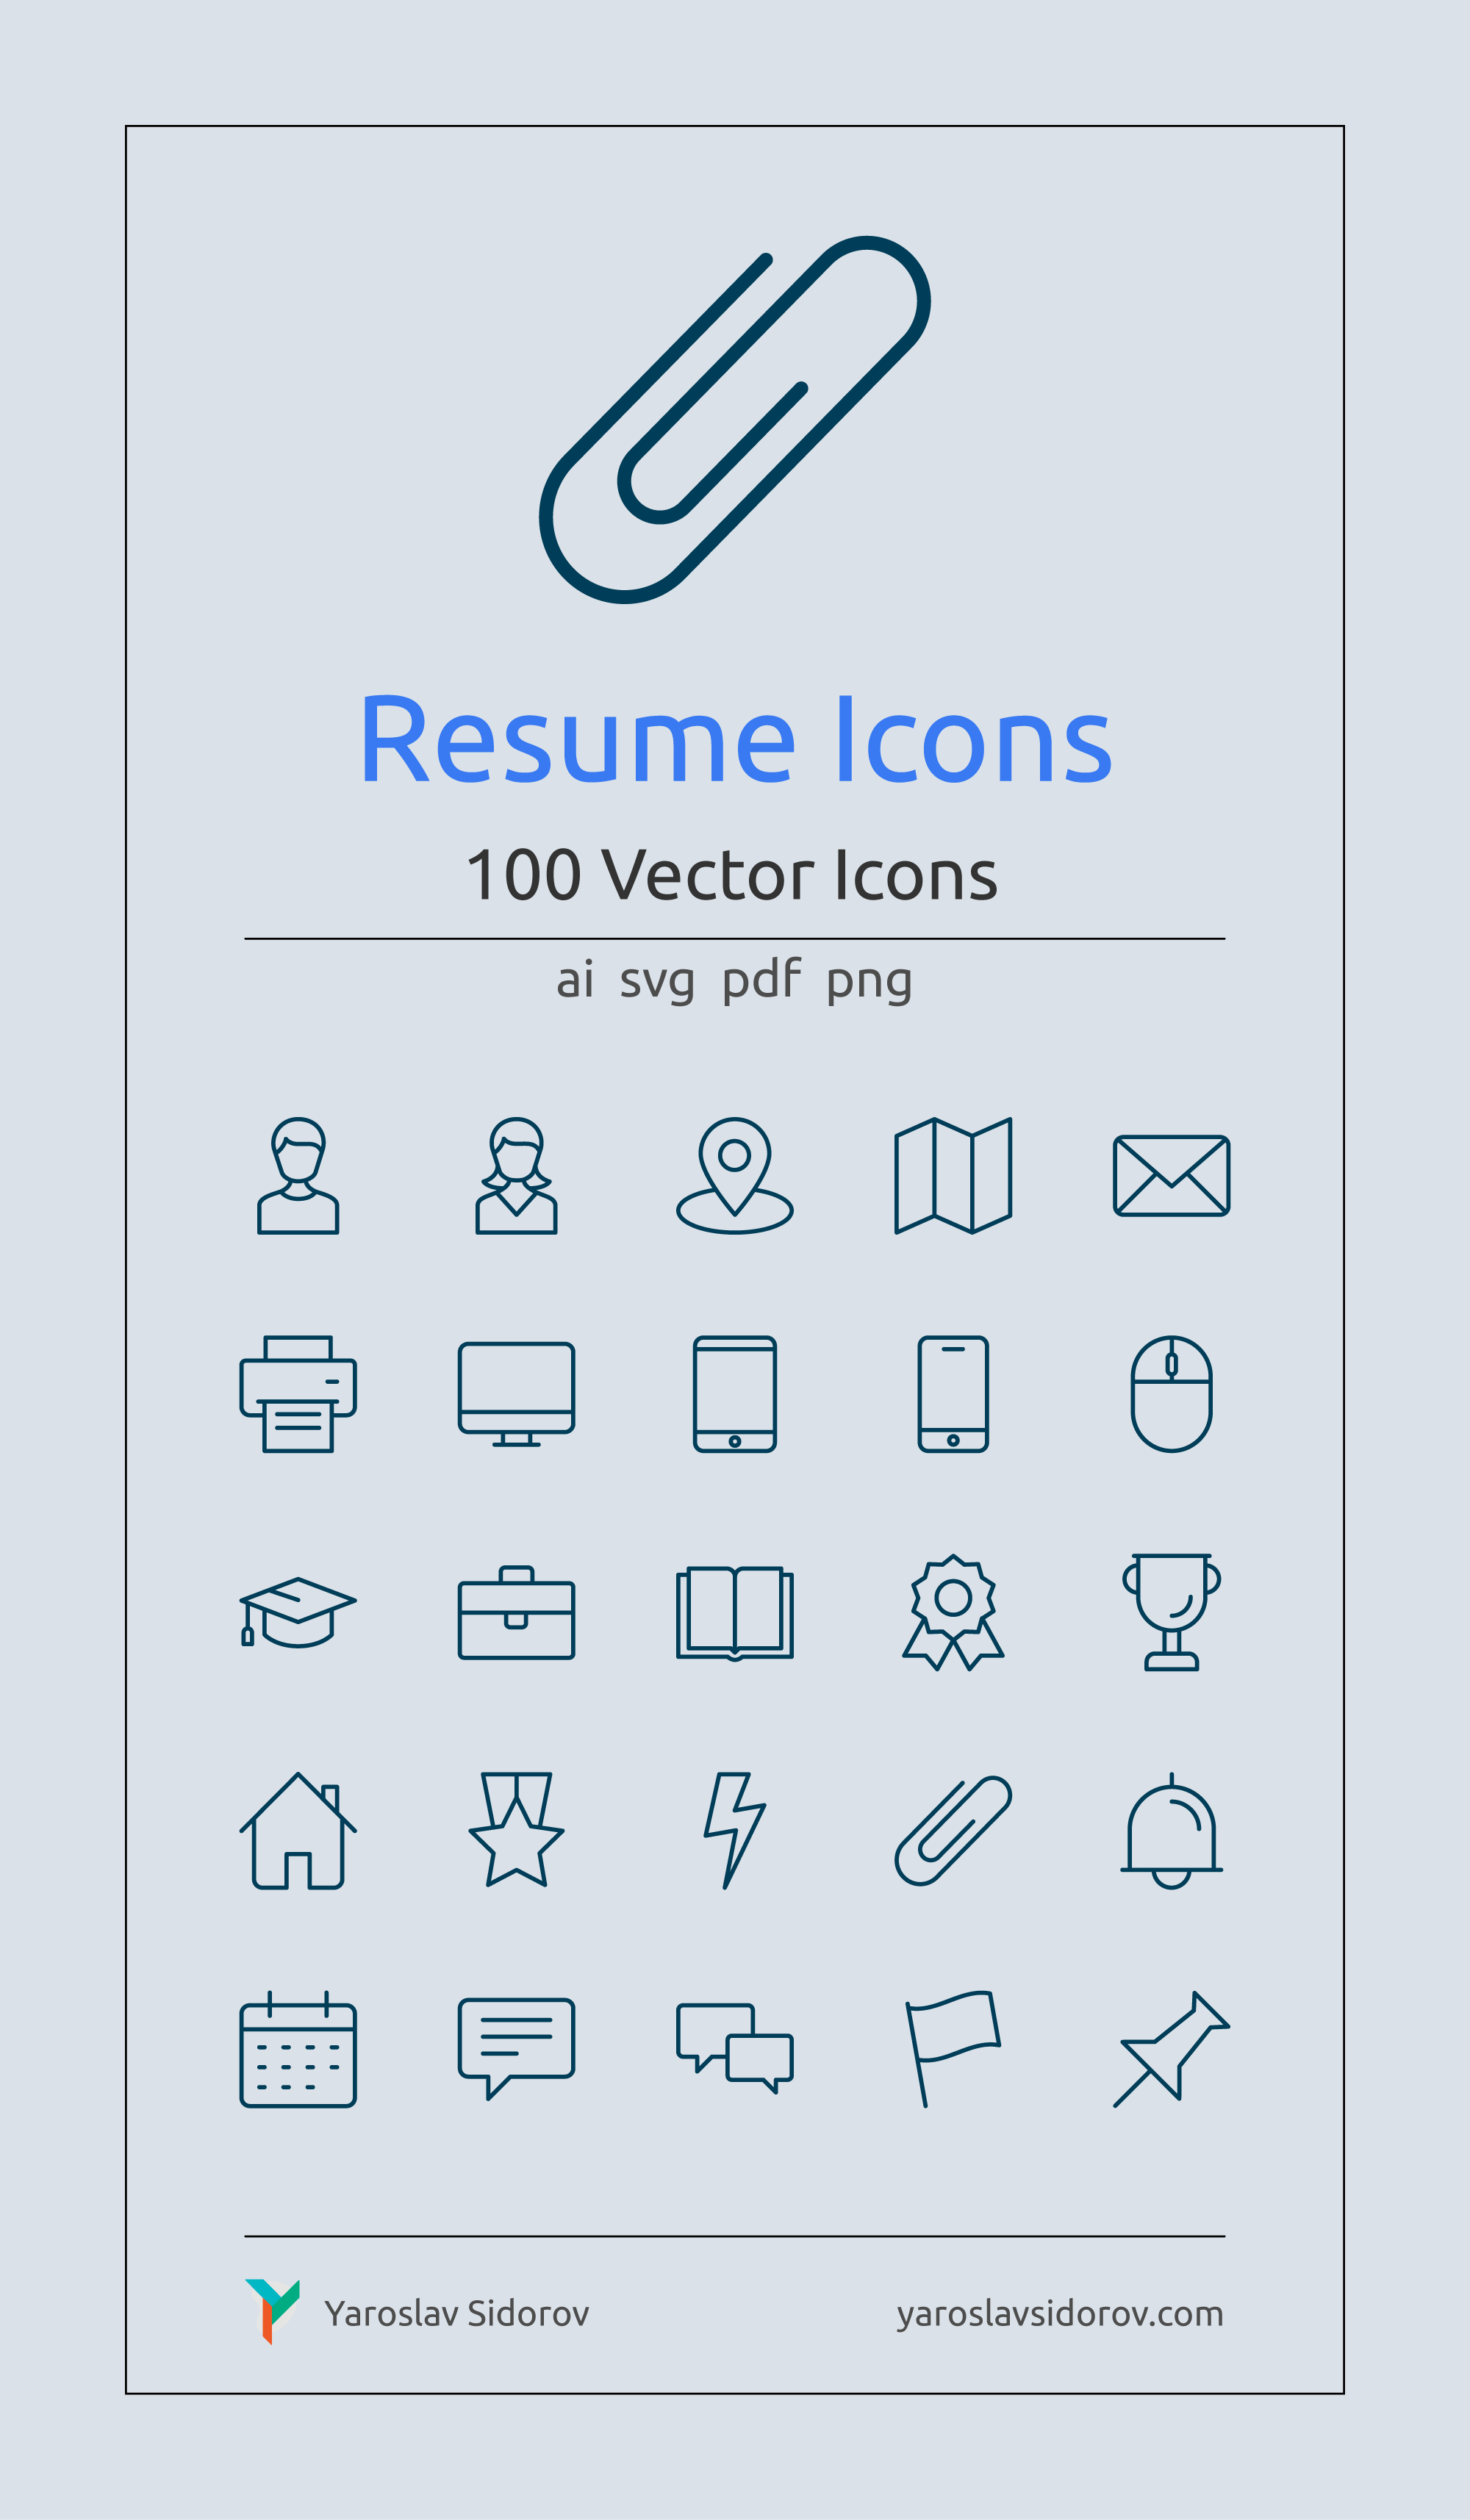 Resume Icons In Vector And Png Etsy In 2021 Resume Icons Icon Resume